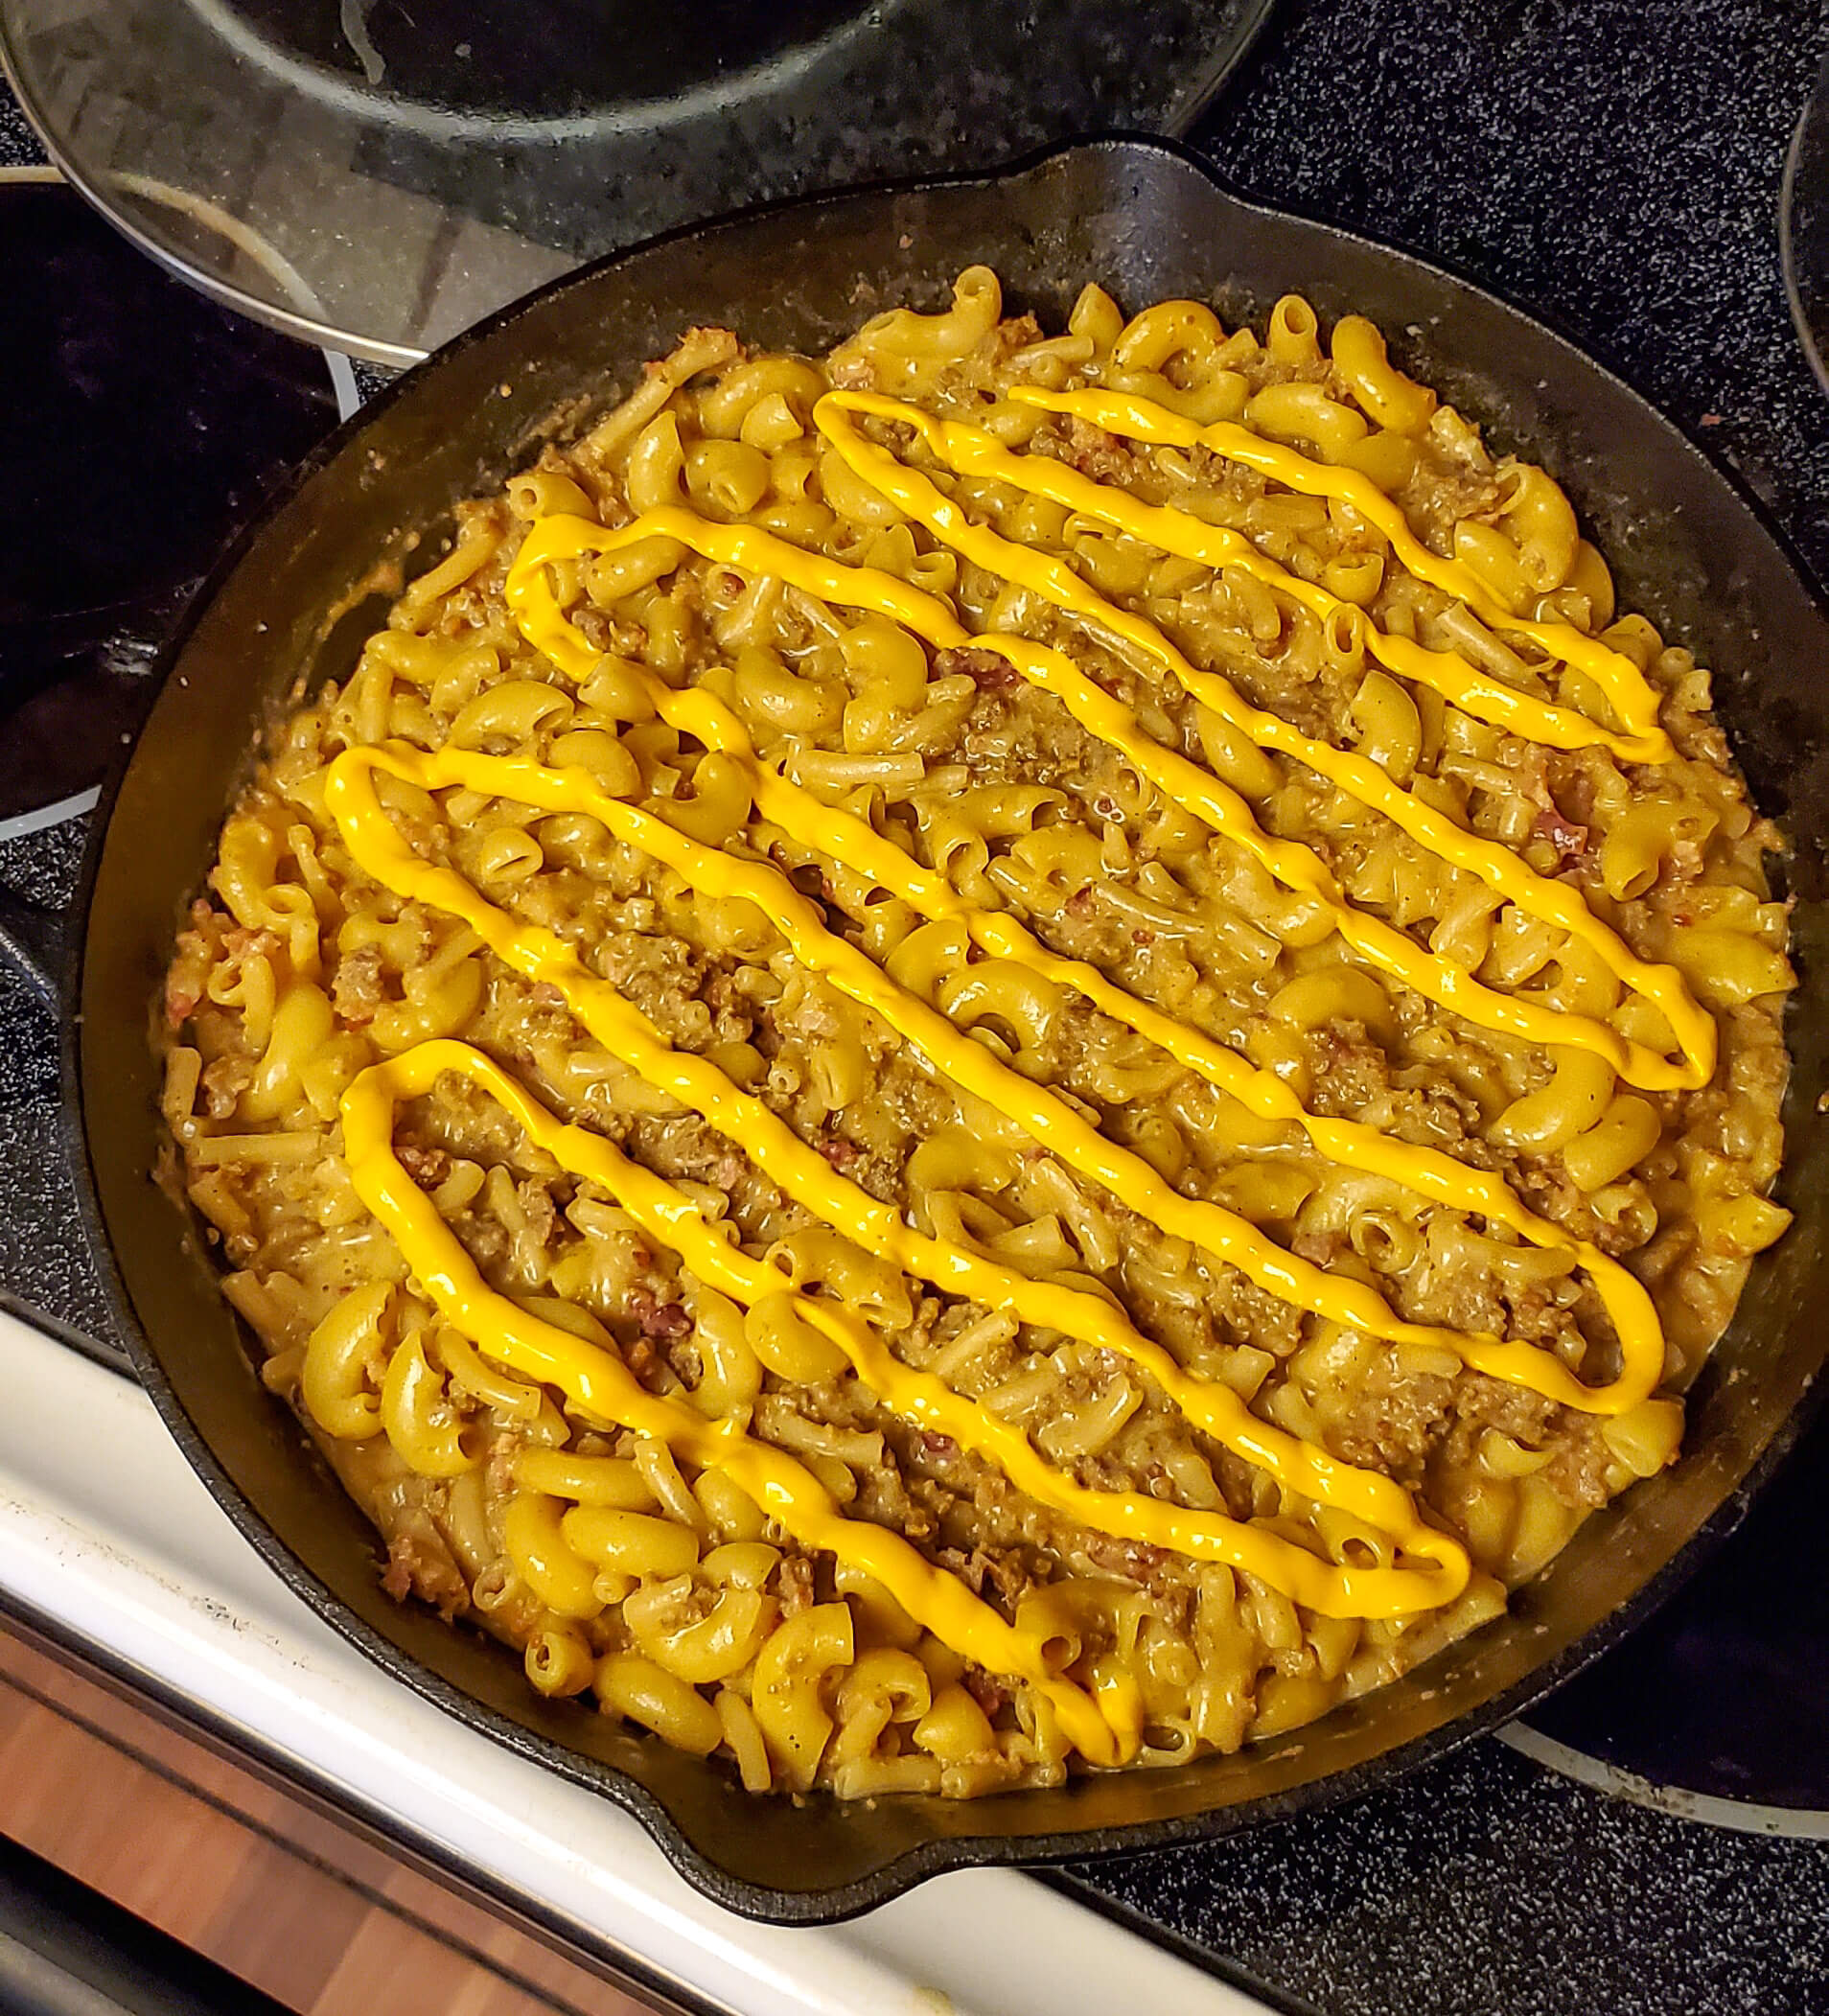 This almost homemade hamburger helper is an easy dinner to make that the whole family will enjoy. It's simple enough to make when you have the ingredients on hand and will definitely satisfy a cheesy craving. Click to see the full recipe. #hamburgerhelper #groundbeefrecipe #cheesymac #macandcheese